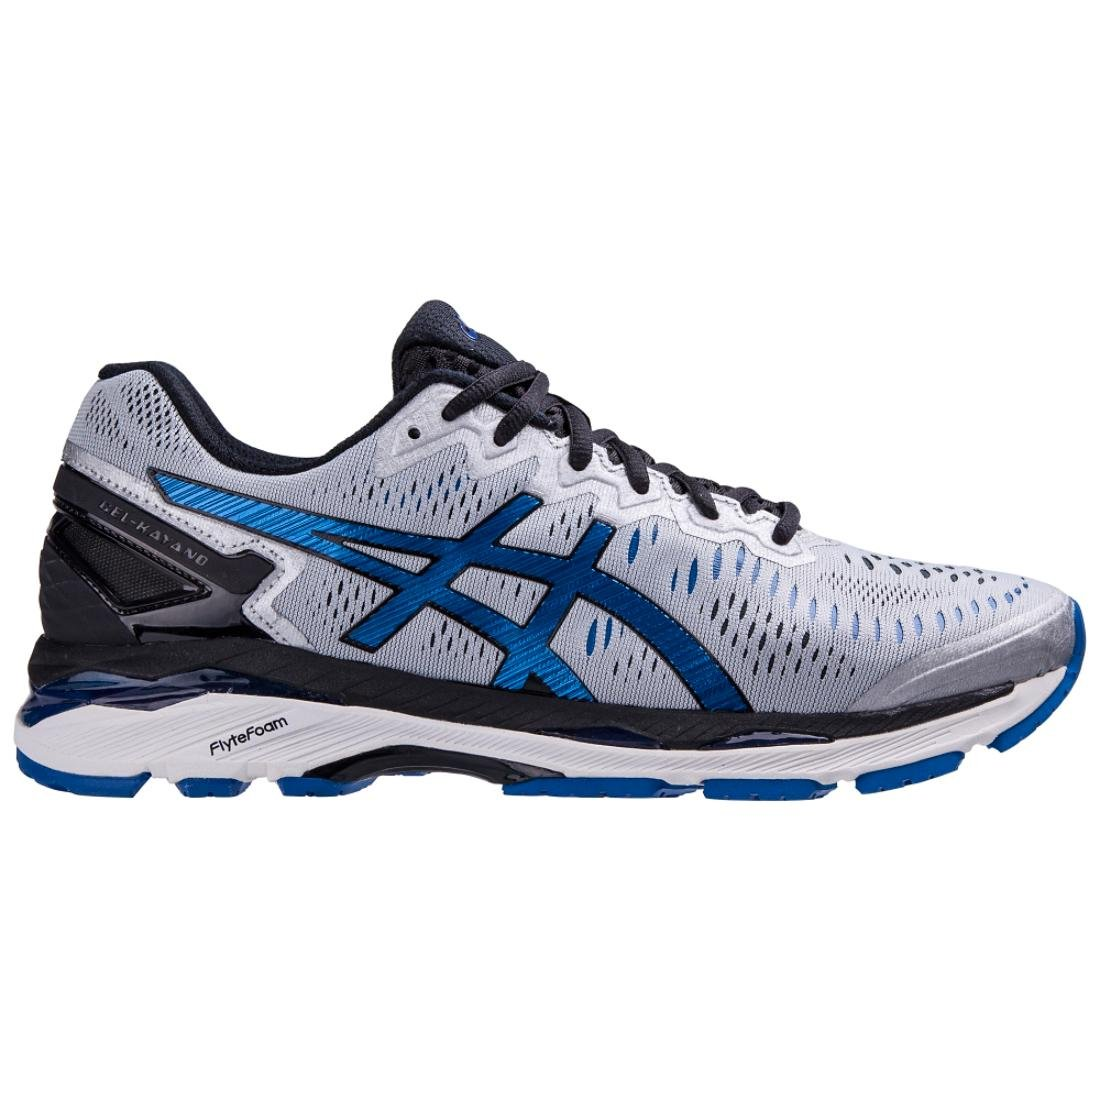 ASICS Men's Gel-Kayano 23 Running Shoe, Silver/Imperial/Black, 11 M US